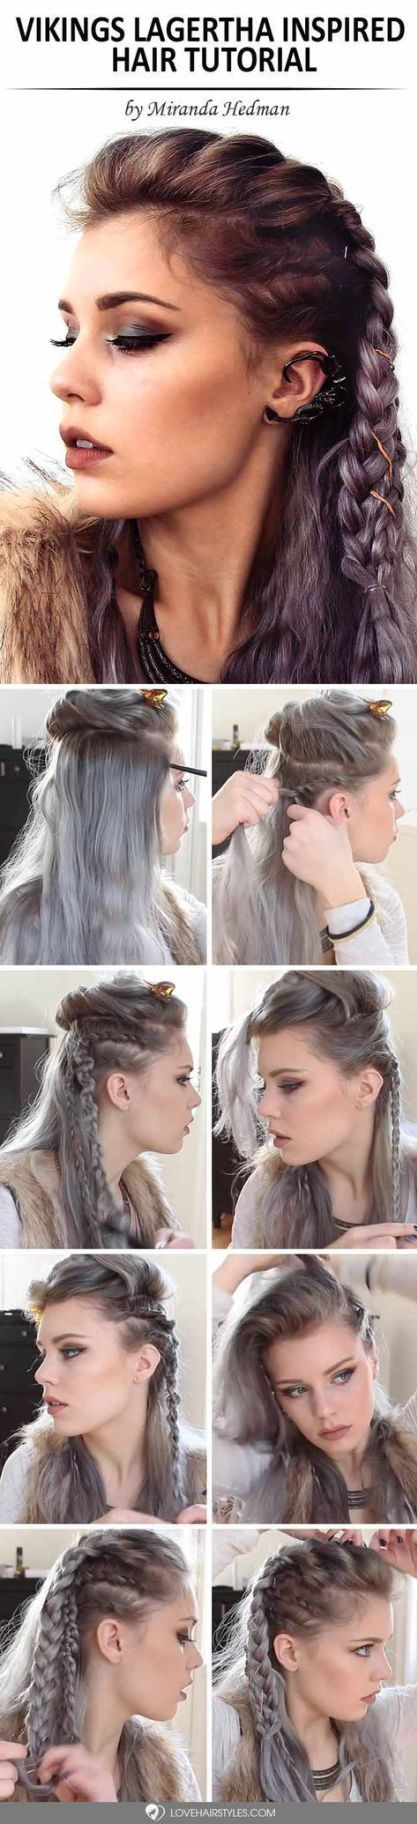 styles for hair braids 4848 best hair trends images on hairstyles 4848 | 933776a183e488daec98075a59d09975